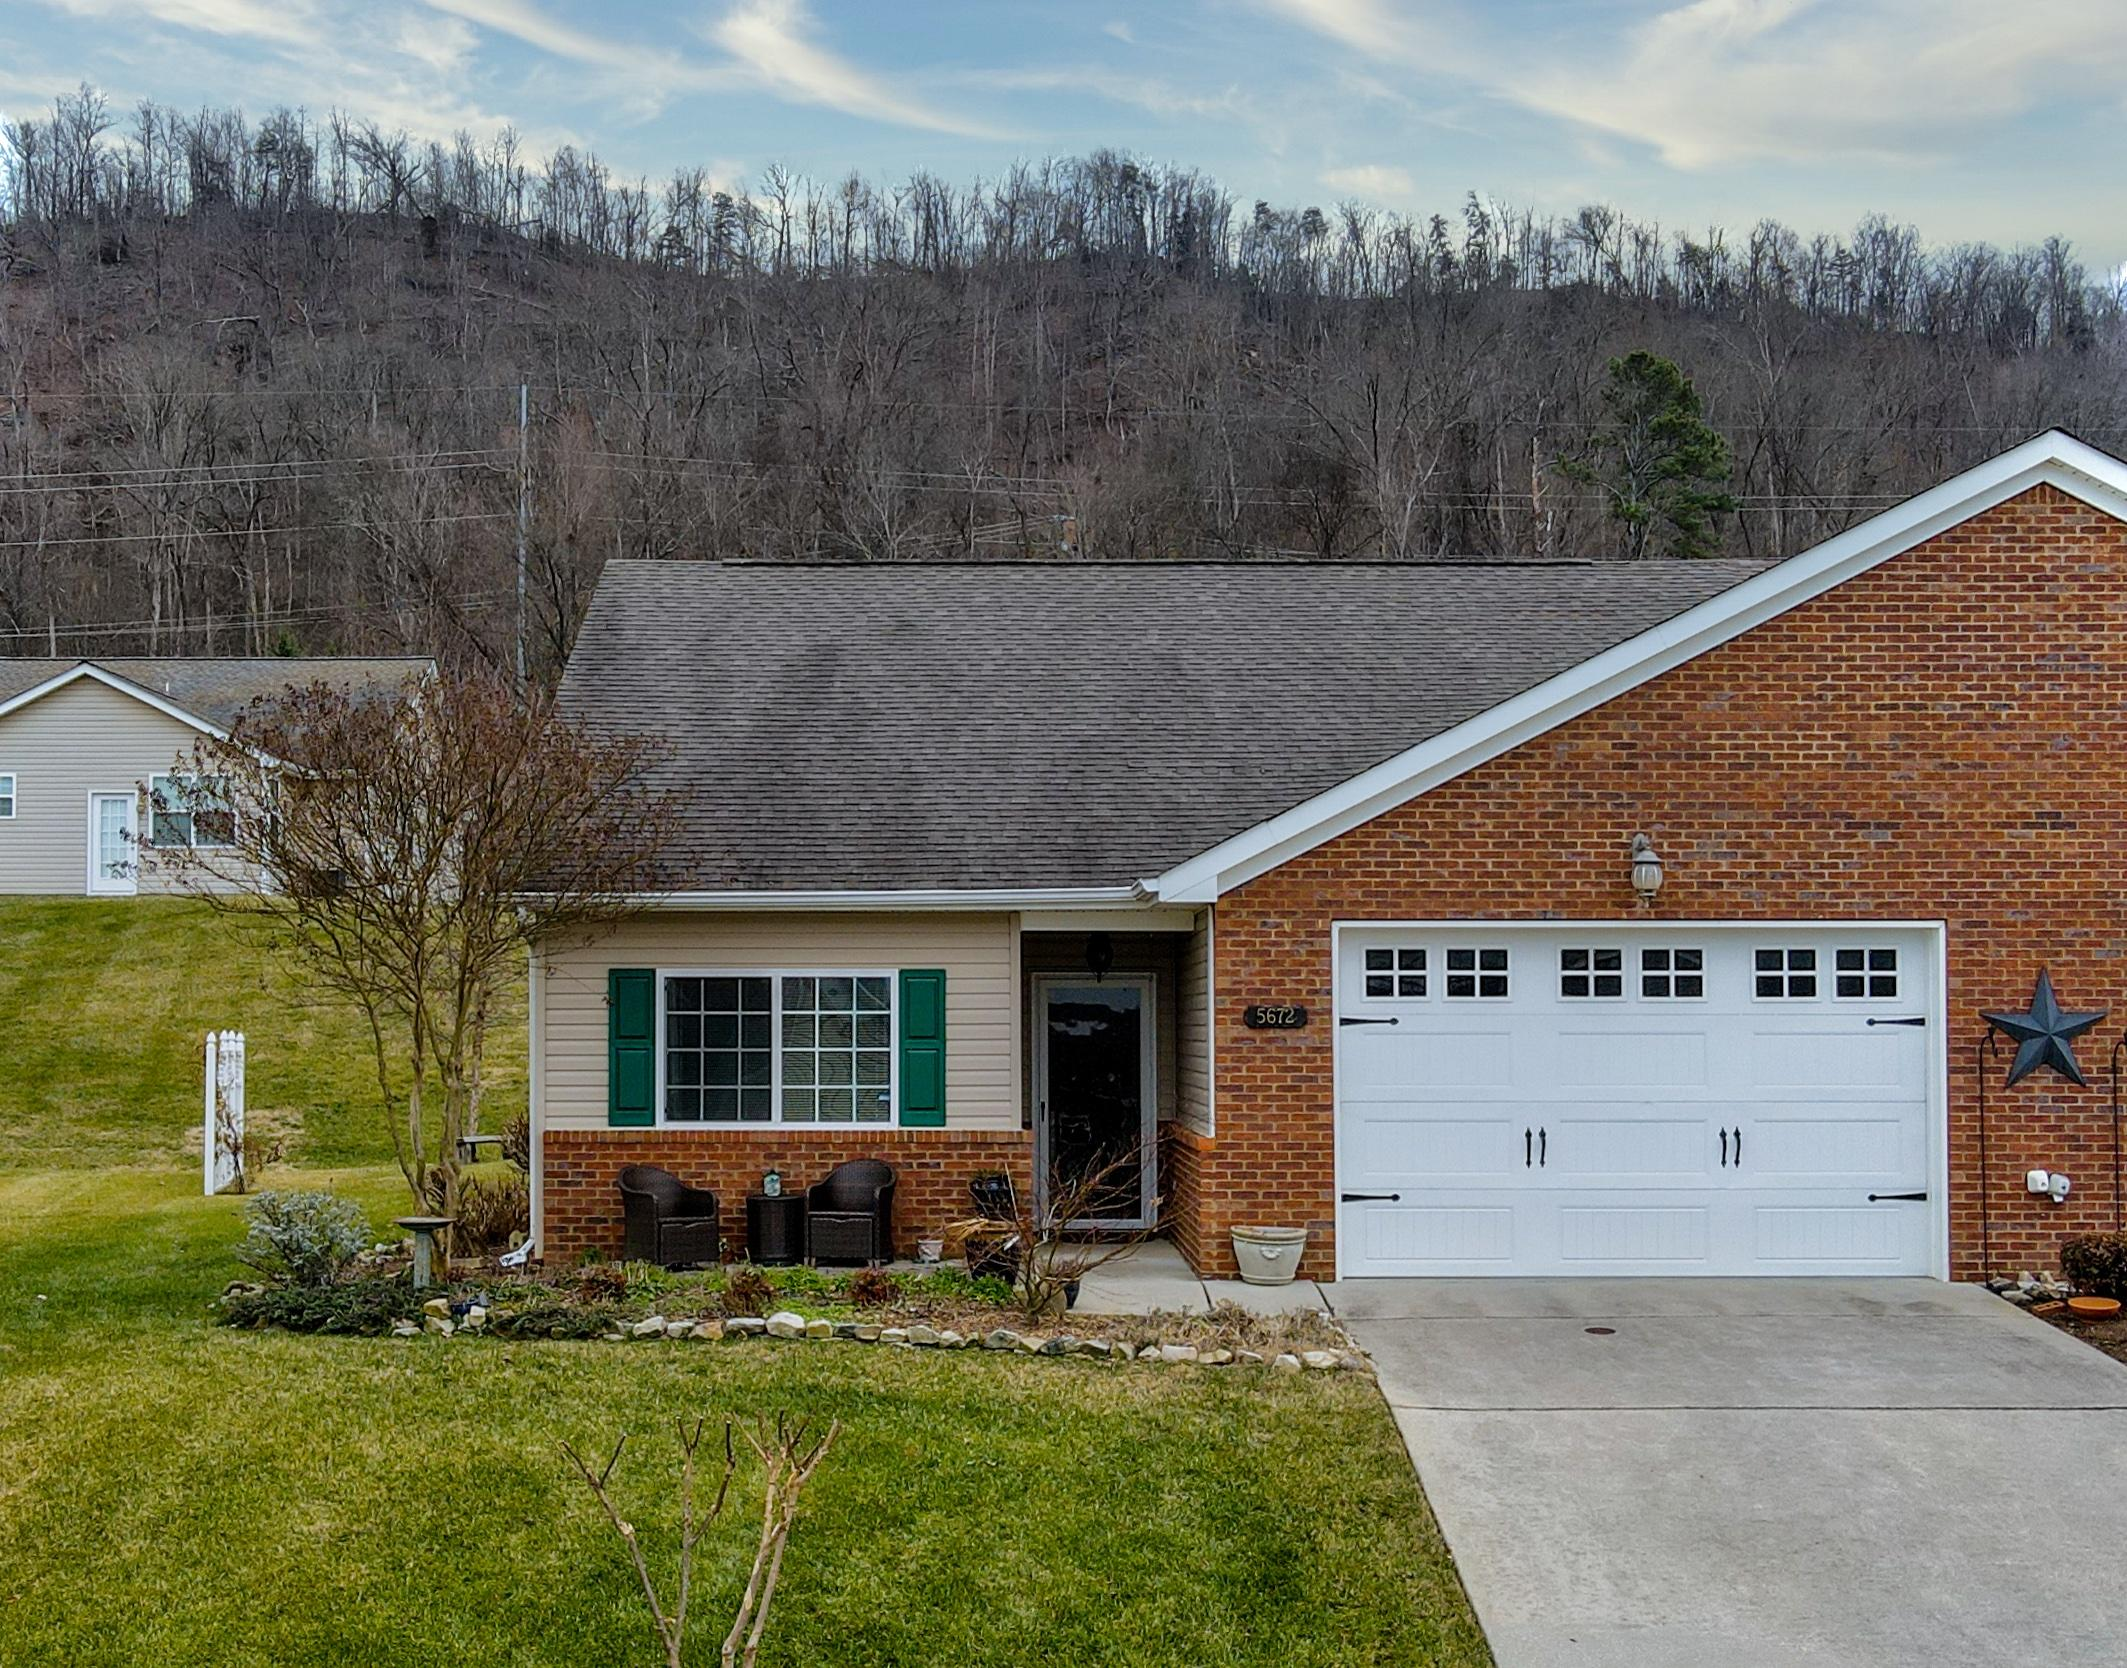 5672 Hickory St, Ooltewah, TN 37363